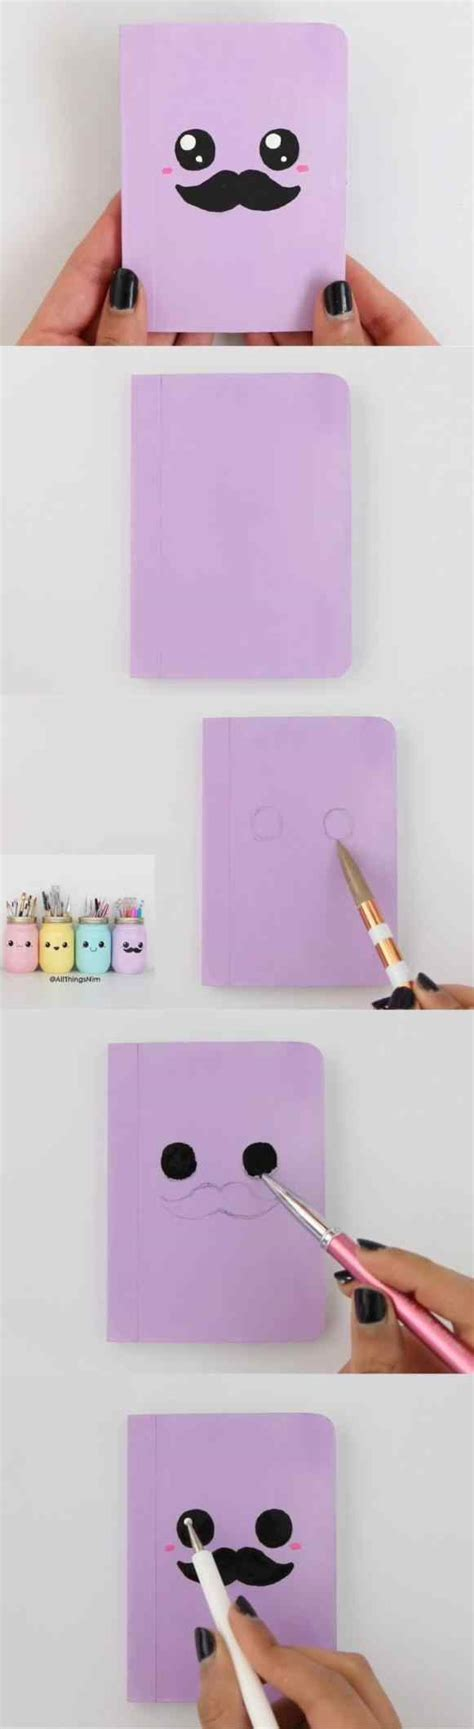 Good Diy Room Decorations For Teens #3: Decor-girl-more-diy-crafts-for-teenage-girls-step-by-step-room-decor-girl-rainbow-that-will-make-you-smile-all-day.jpg